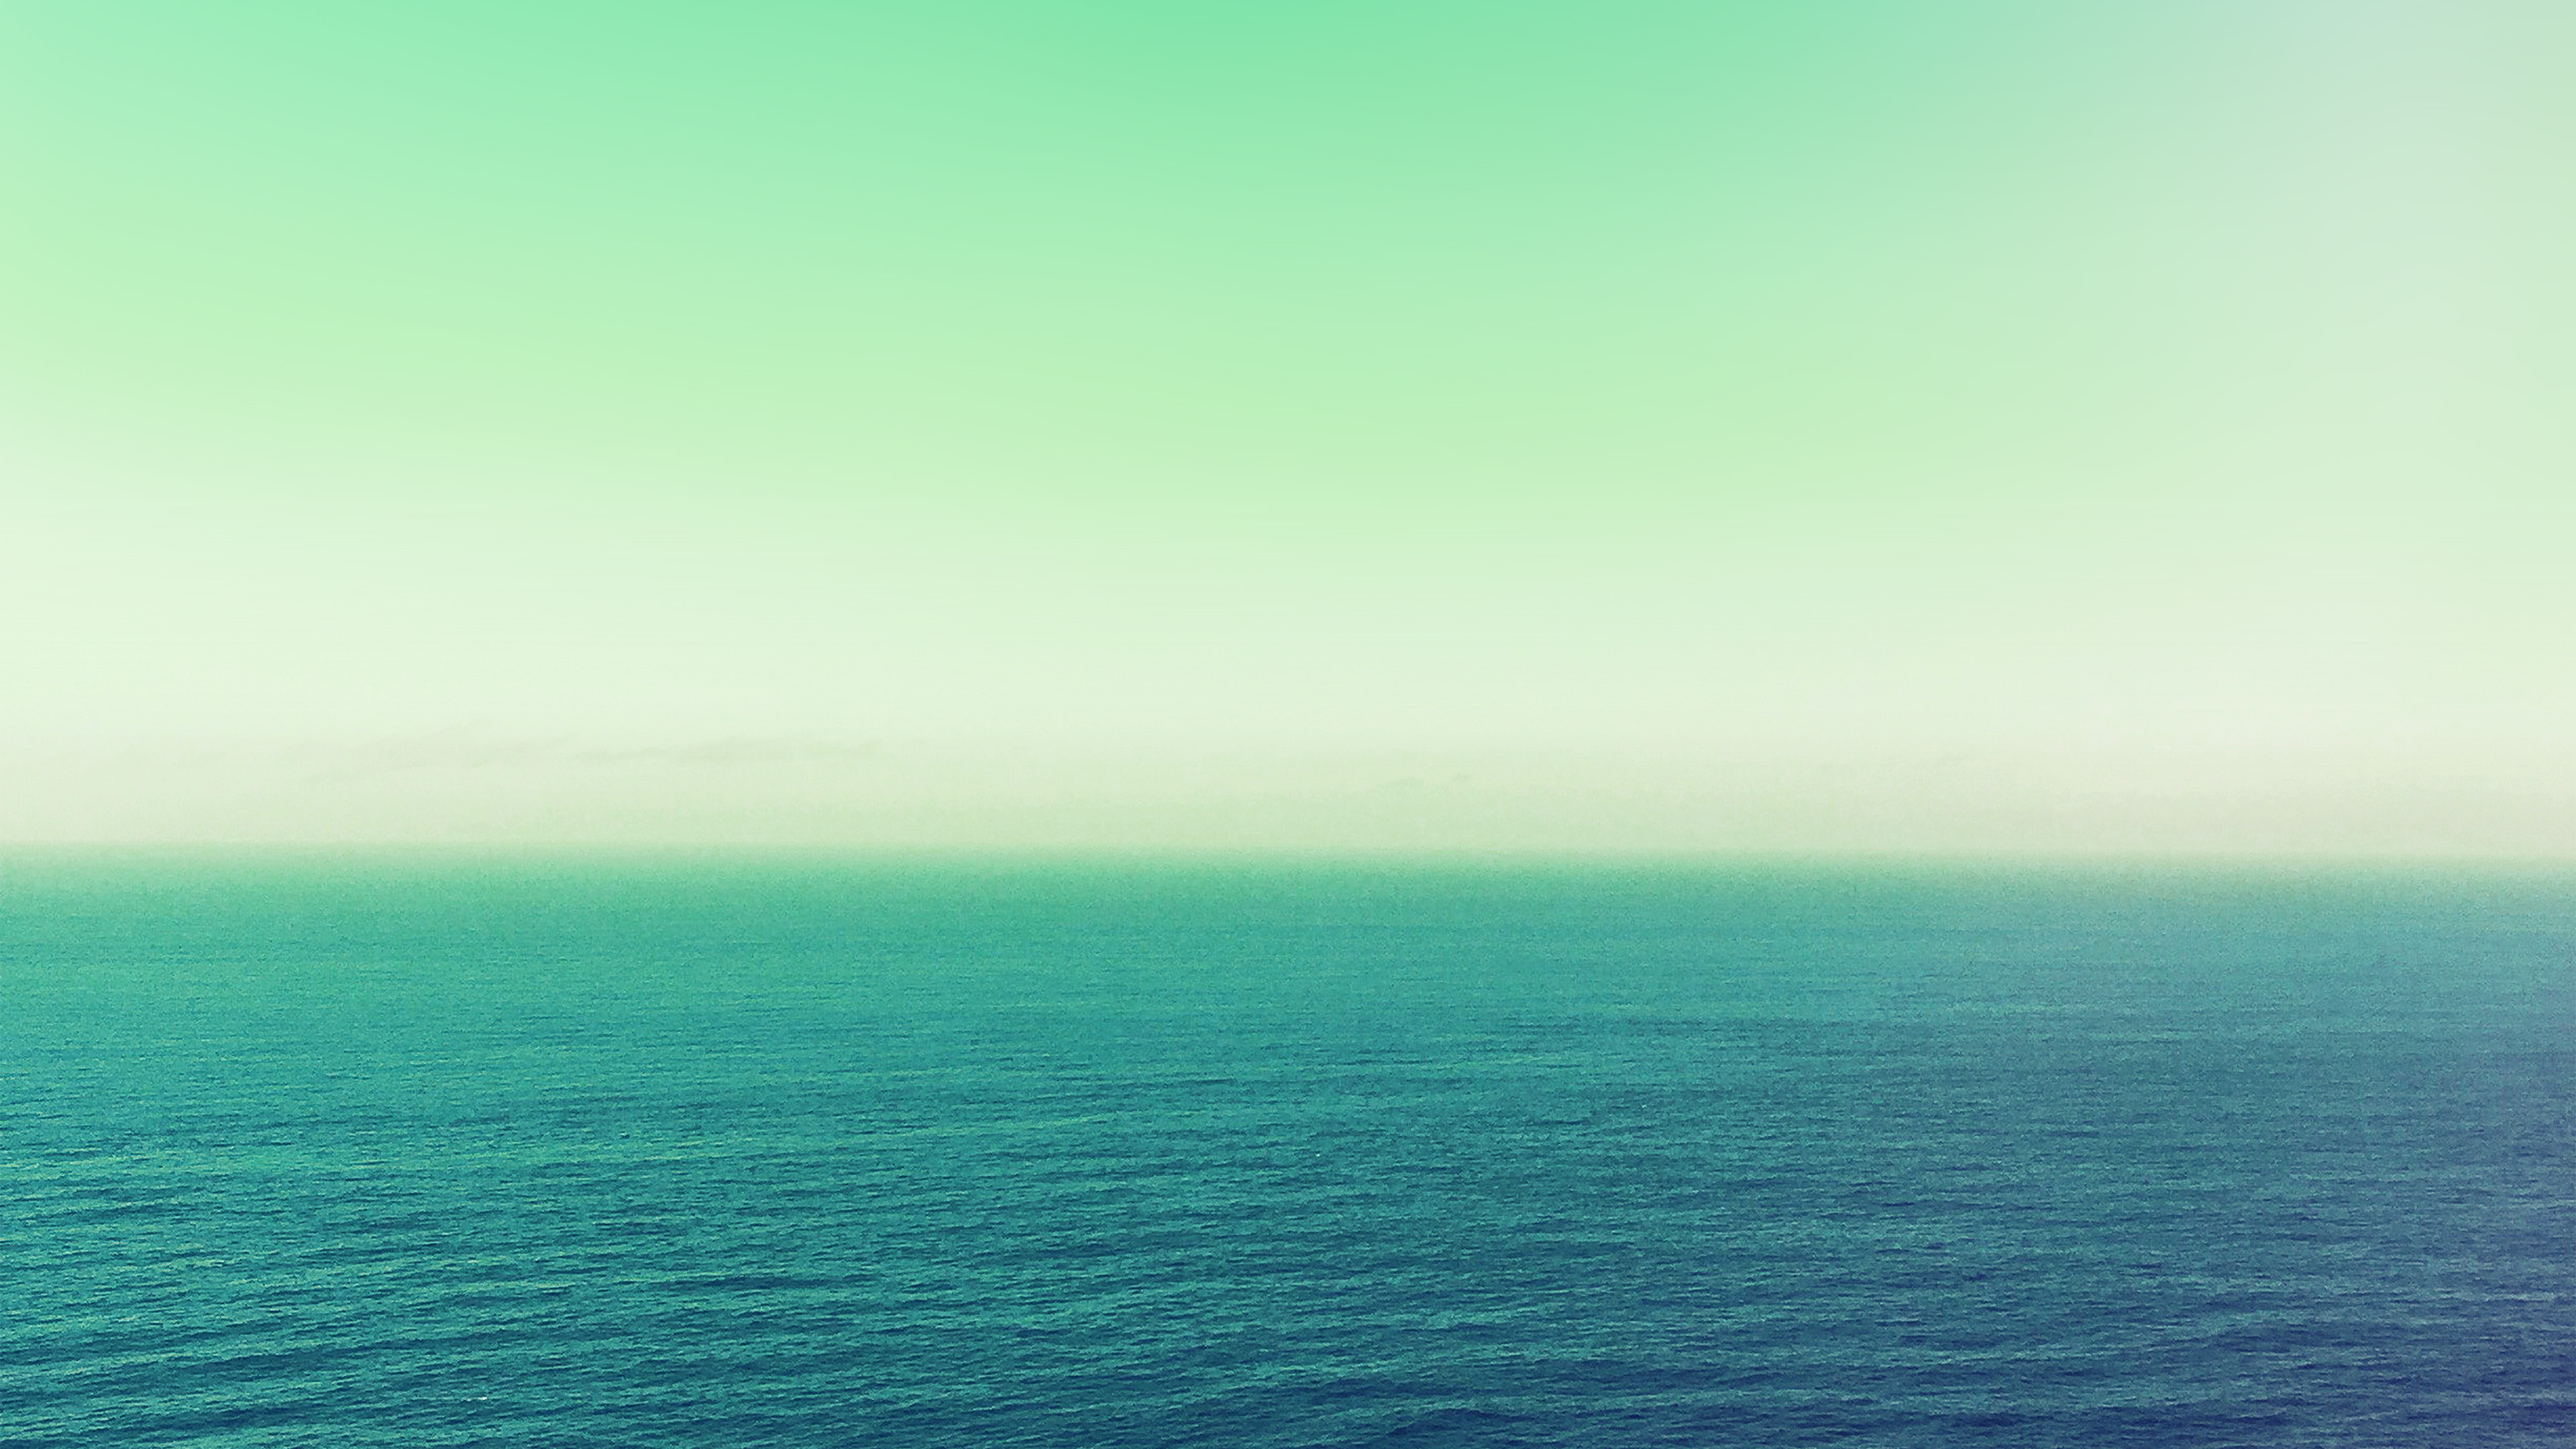 Green Day Iphone 5 Wallpaper I Love Papers Na11 Calm Sea Green Ocean Water Summer Day